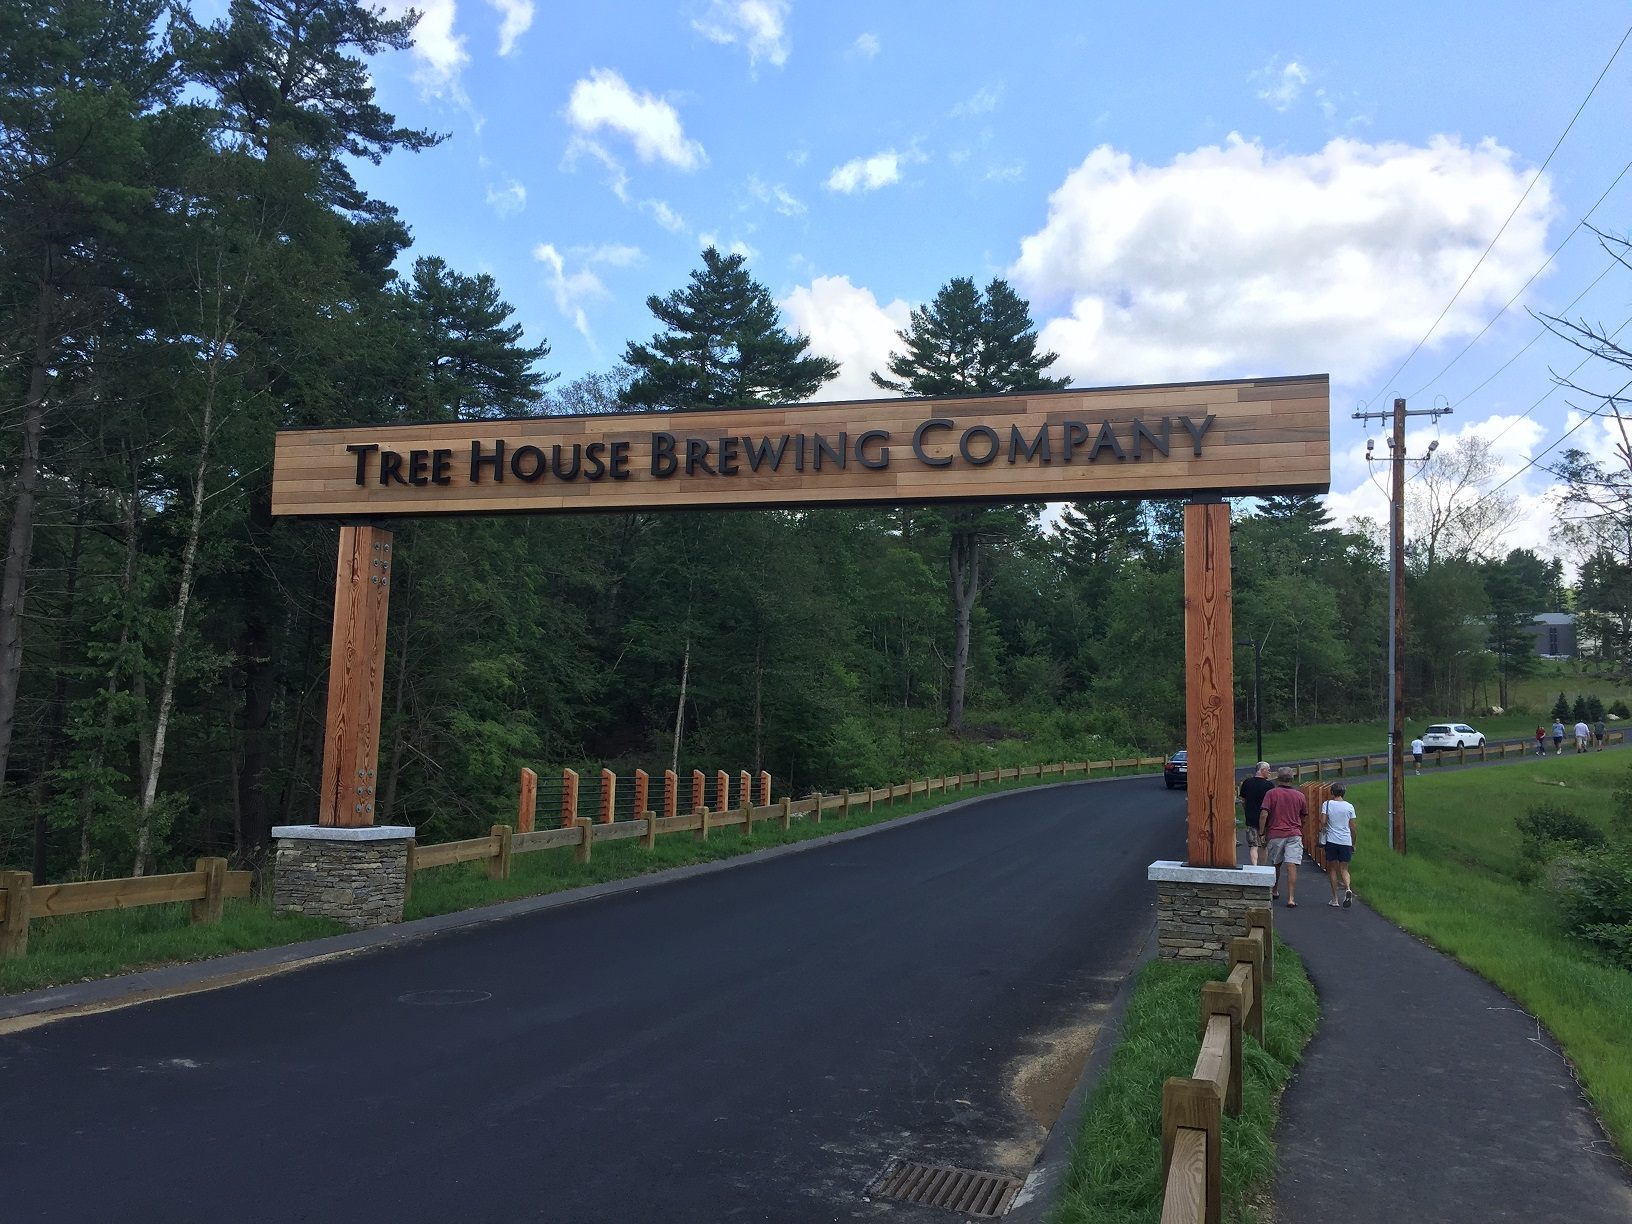 Selectmen give police power to enforce brewery traffic